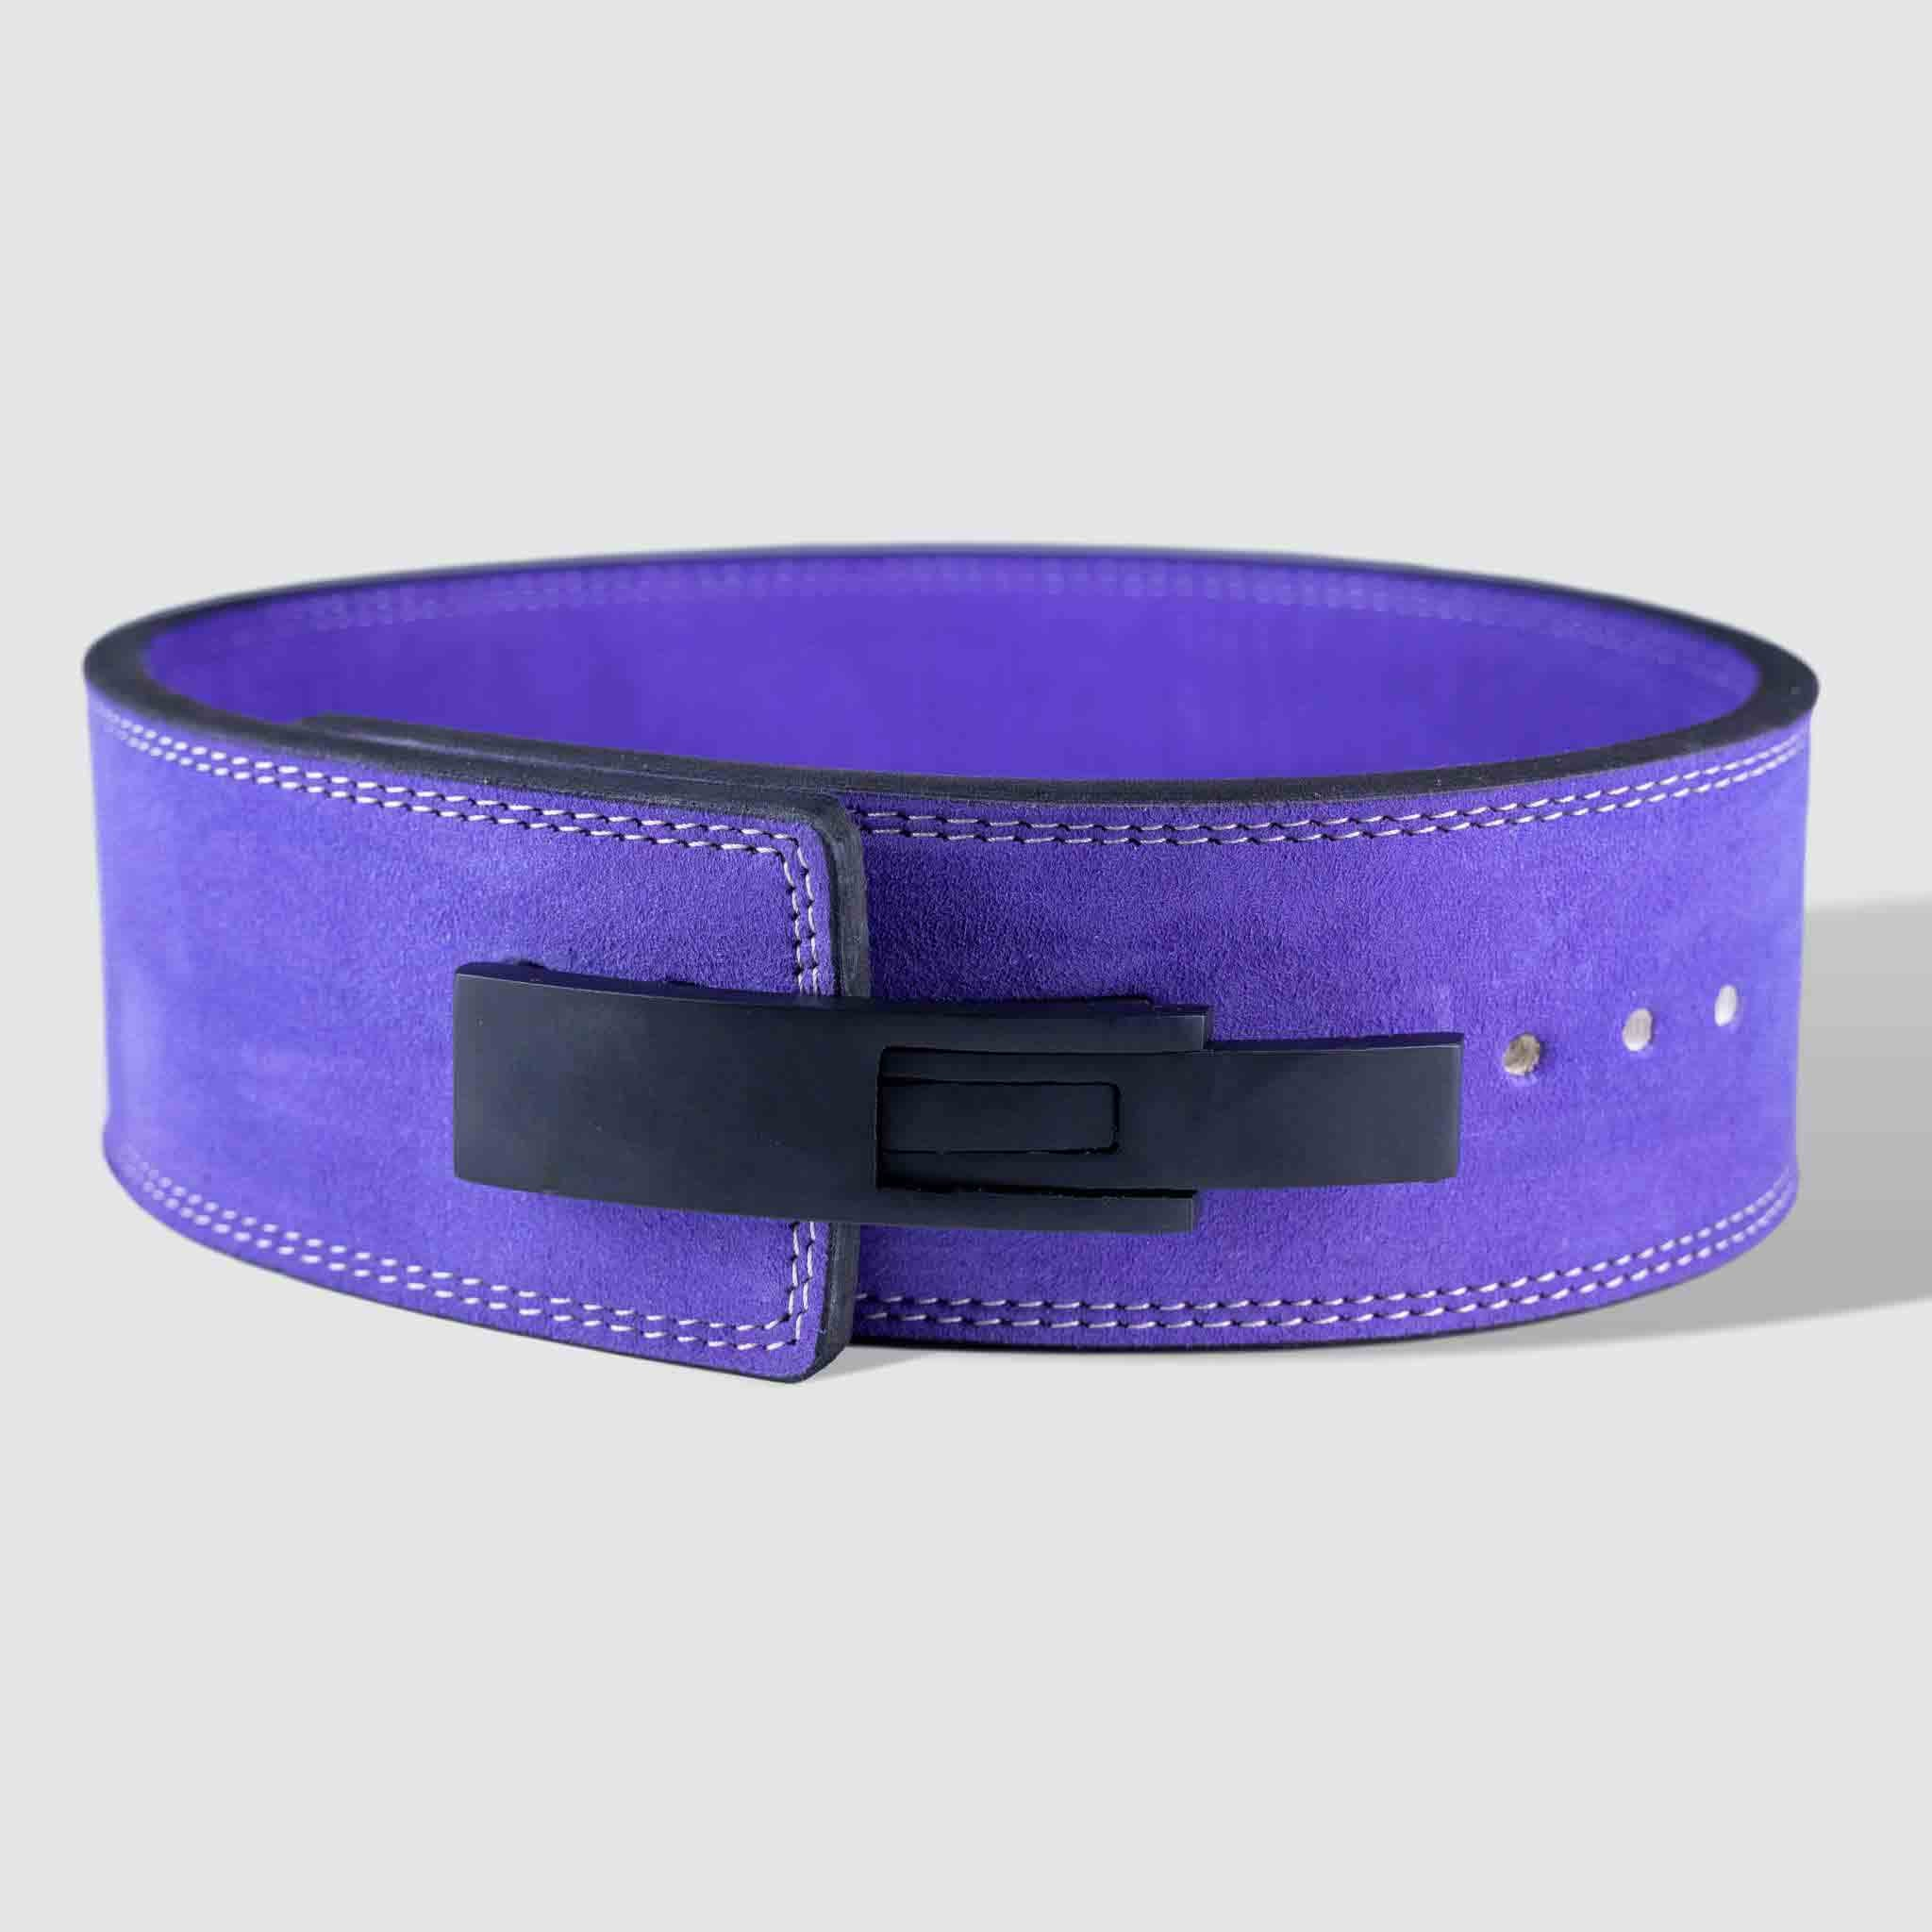 Strength Shop 10mm Lever Belt - IPF Approved - Purple - Strength Shop USA